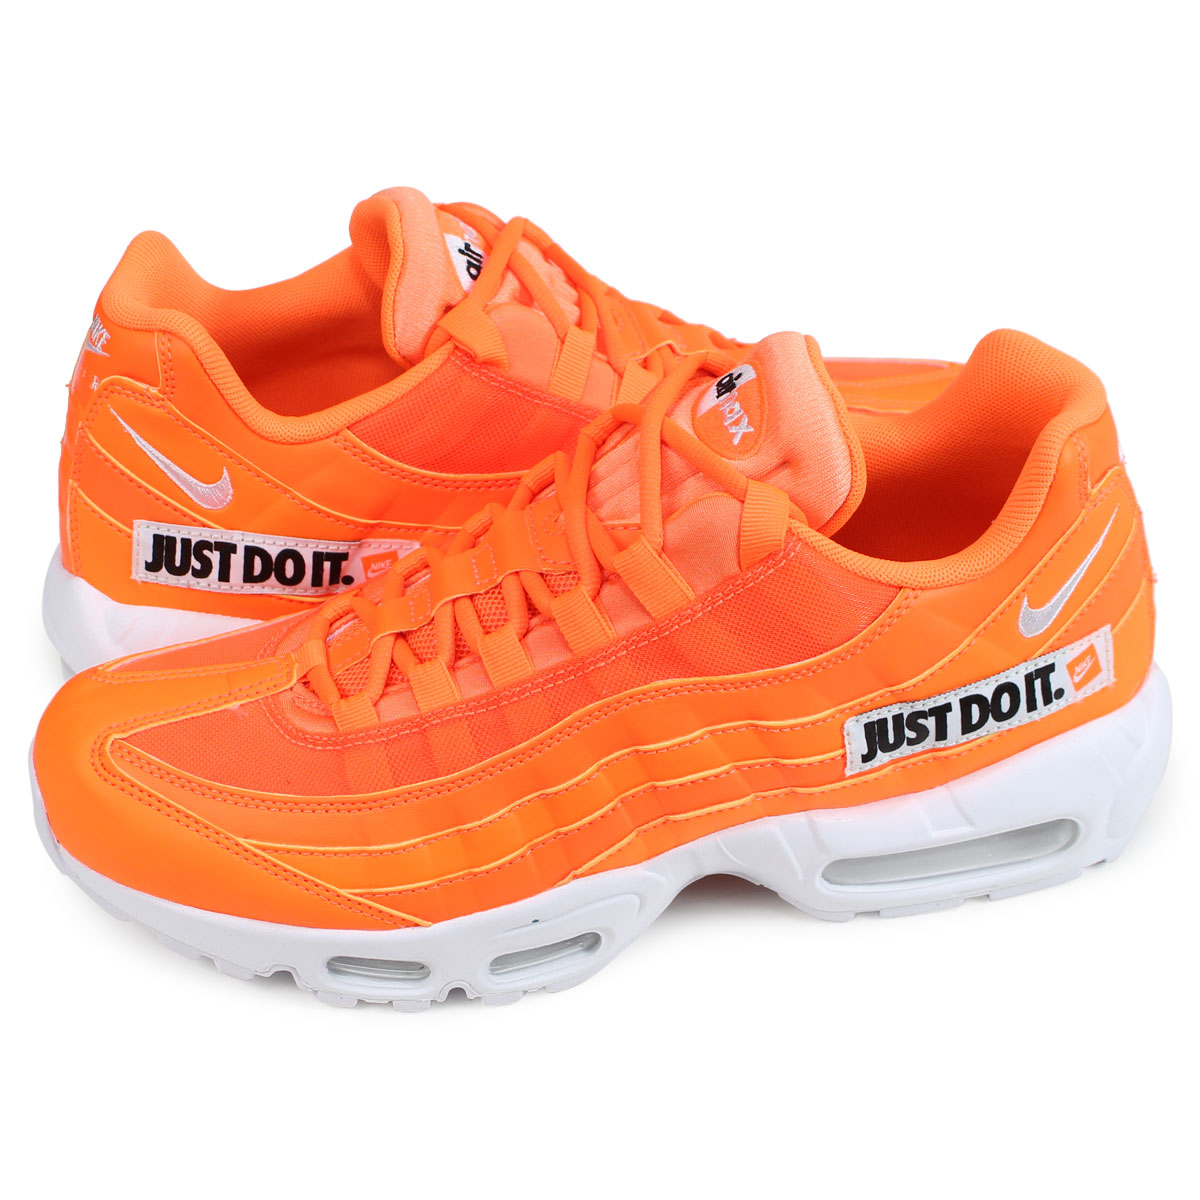 new styles 9c100 b773e Nike NIKE Air Max 95 sneakers men AIR MAX 95 SE JUST DO IT orange AV6246-800